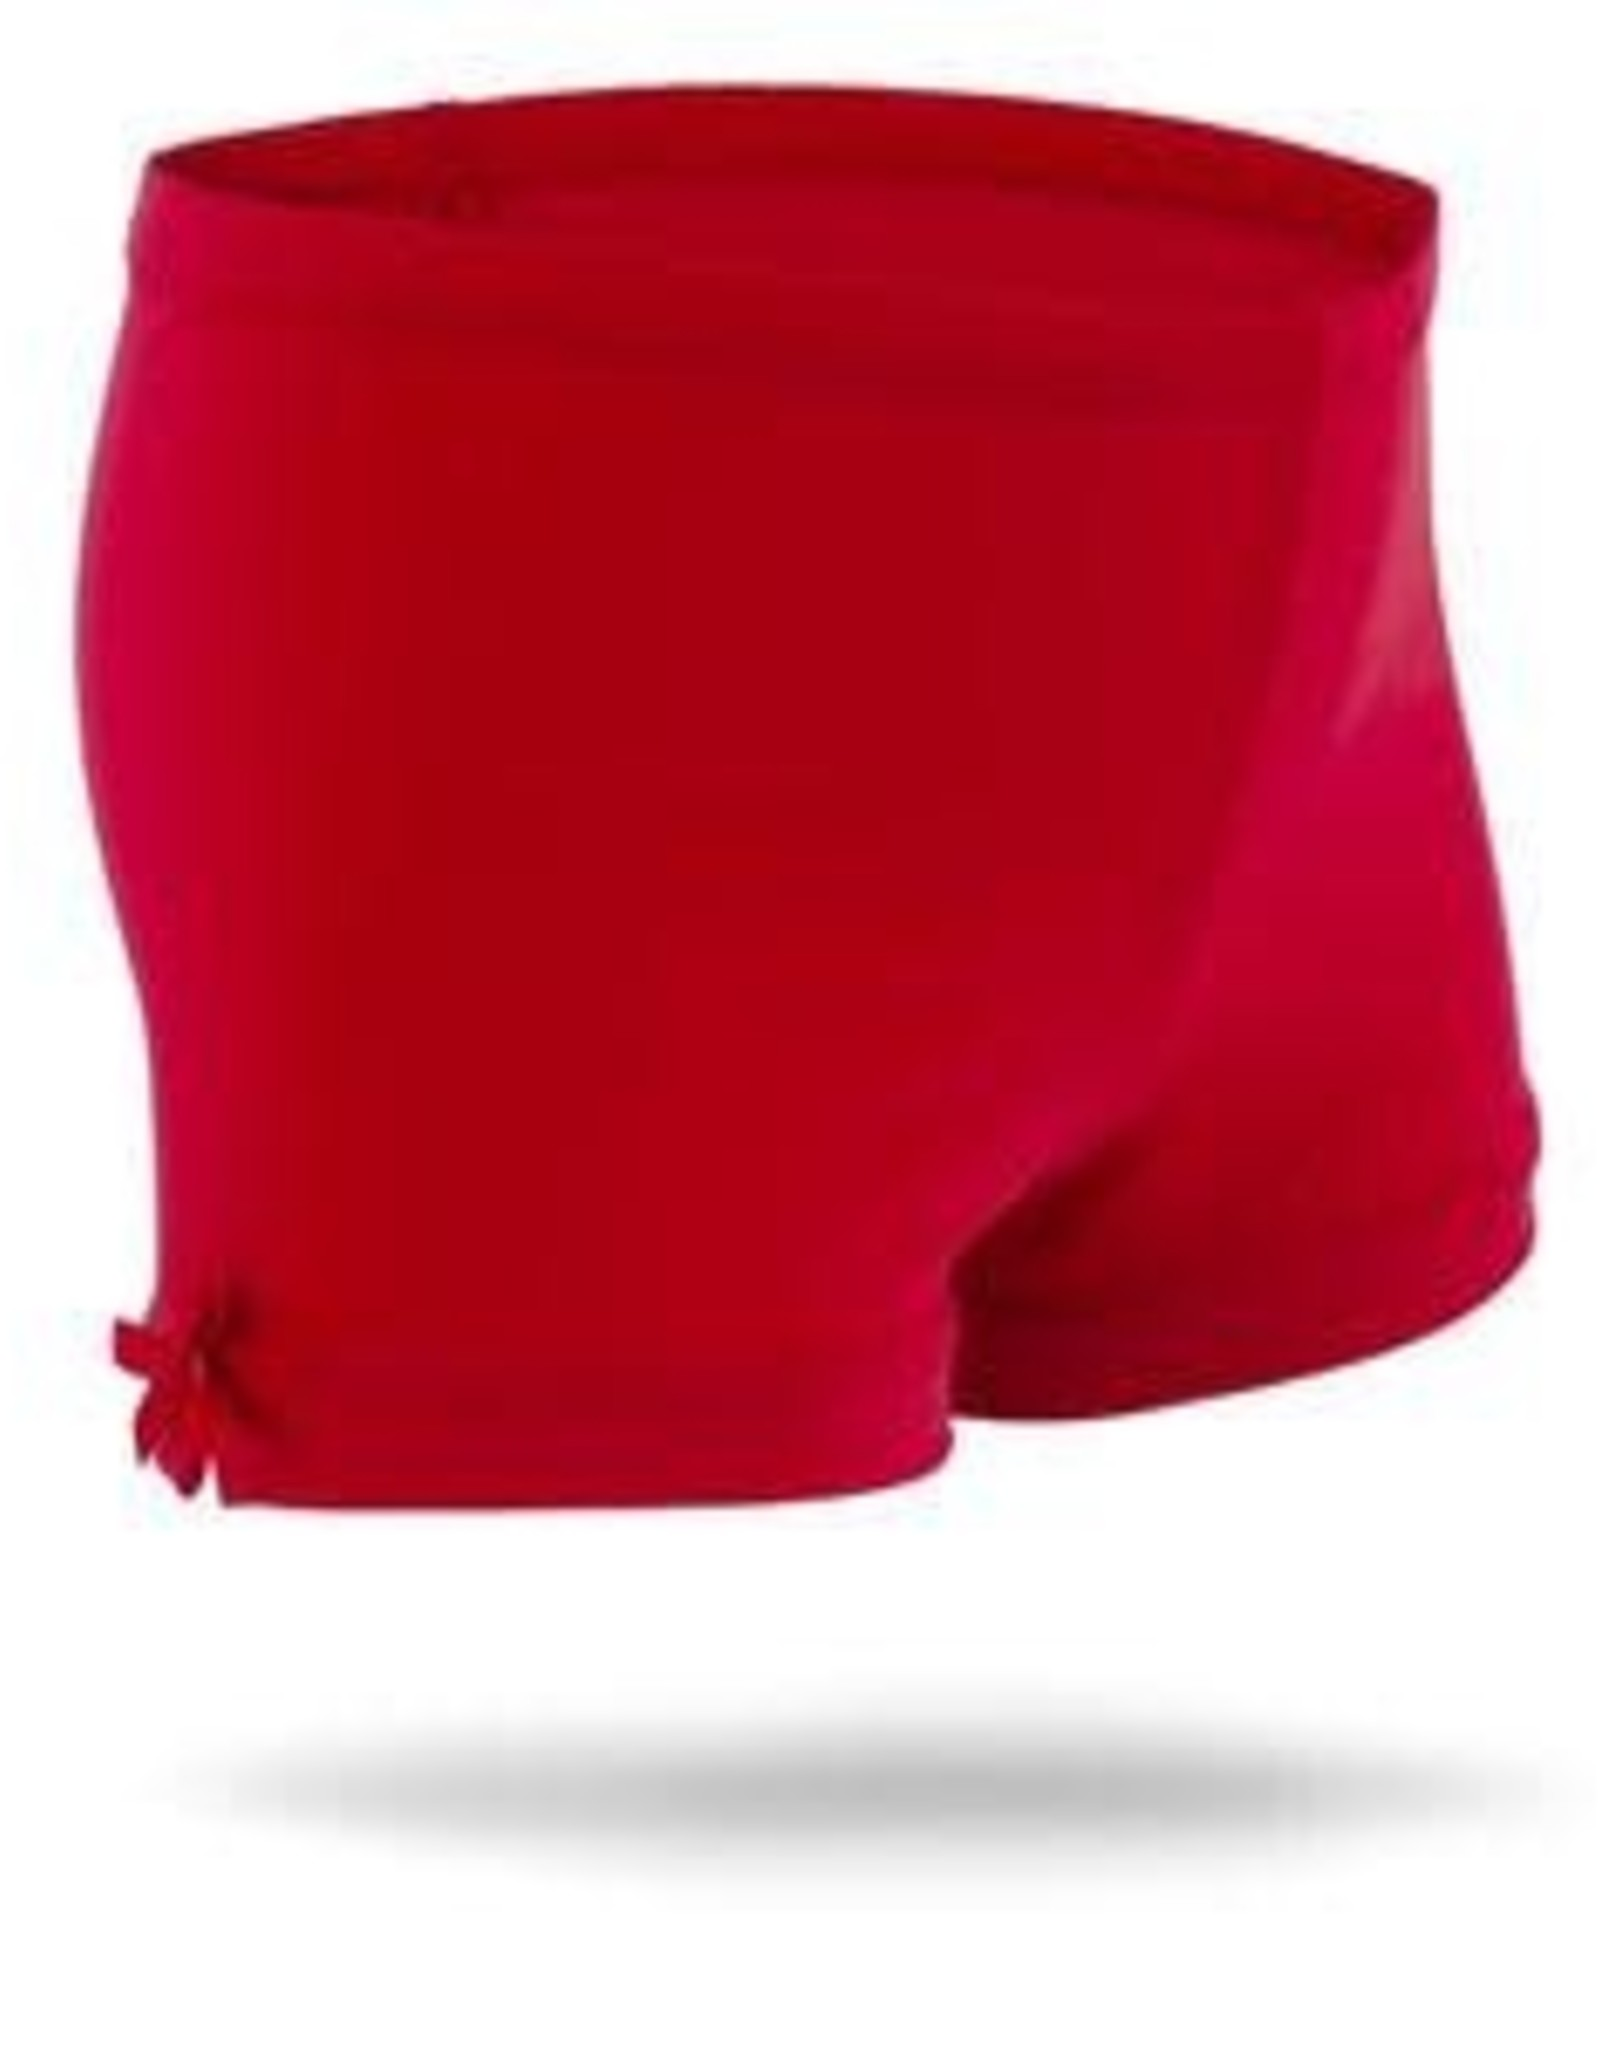 Monkeybar Buddies shorts- red